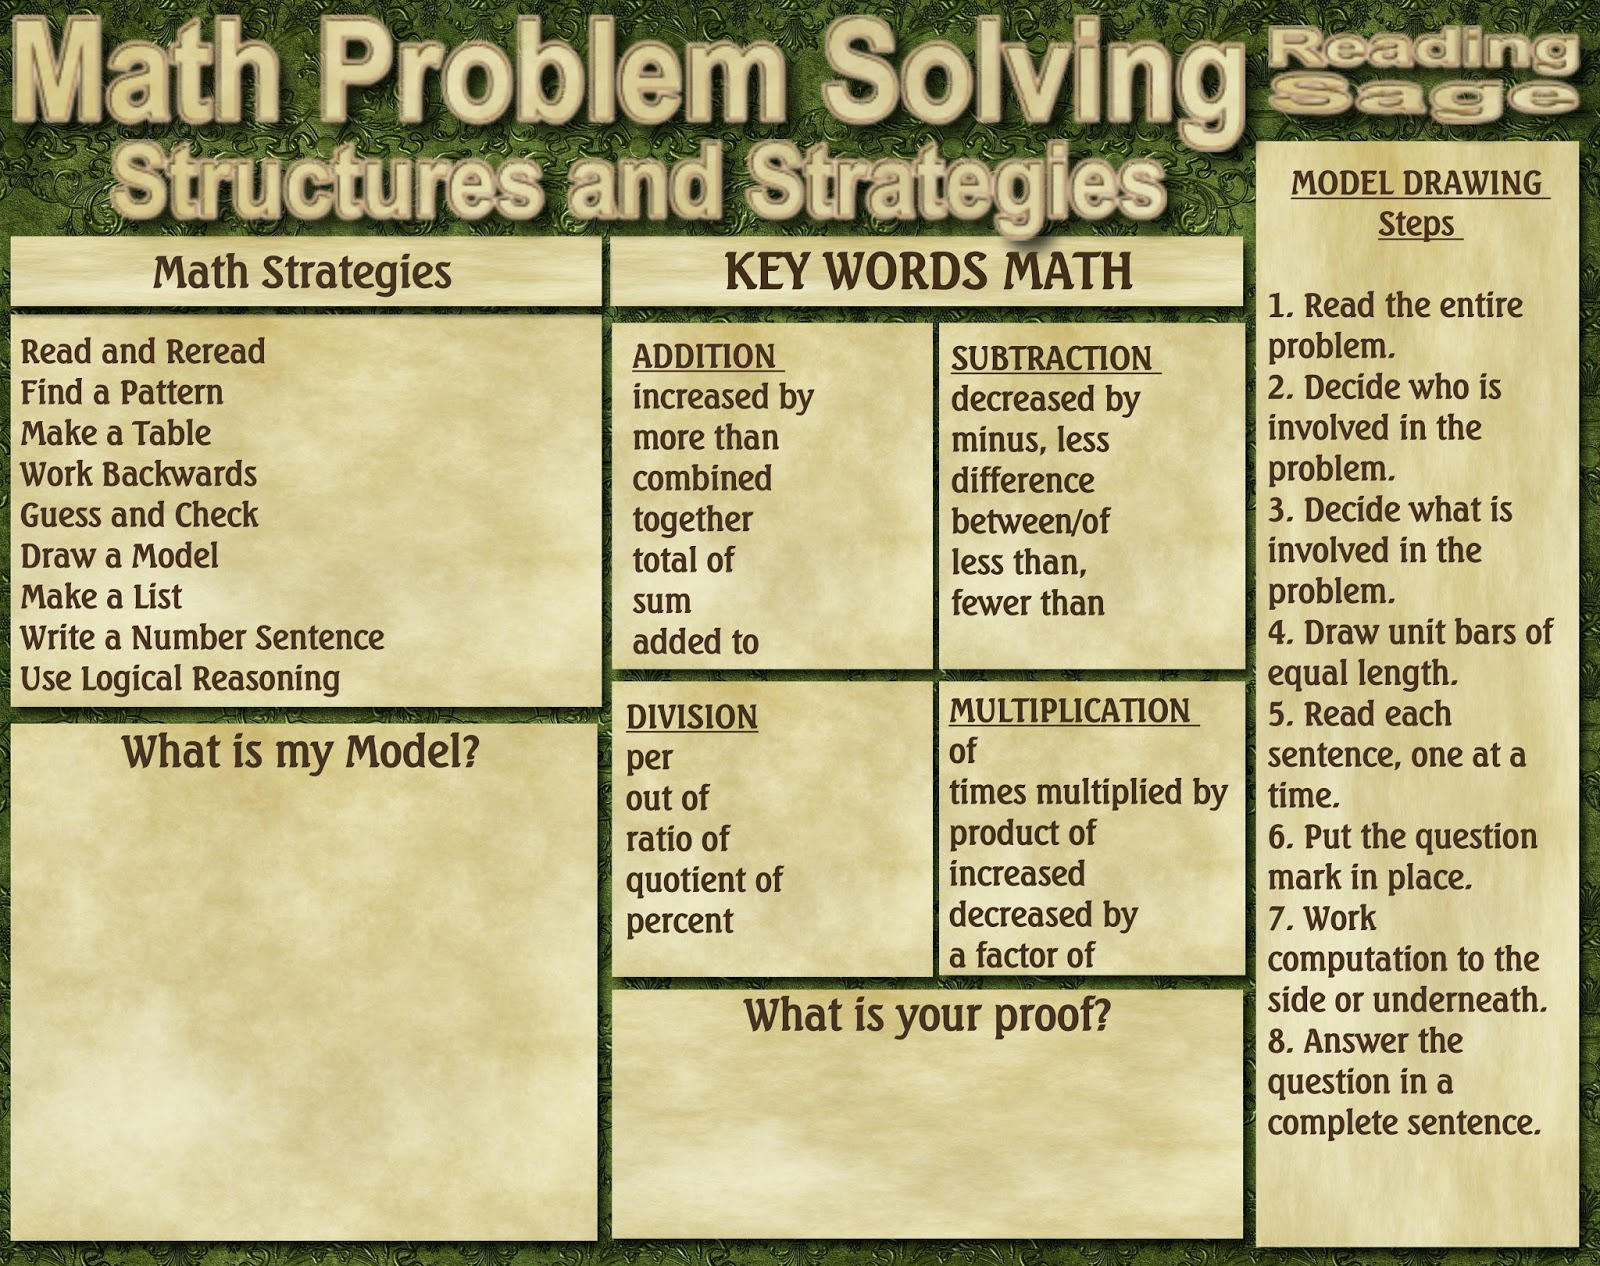 Math problem solving strategies pdf